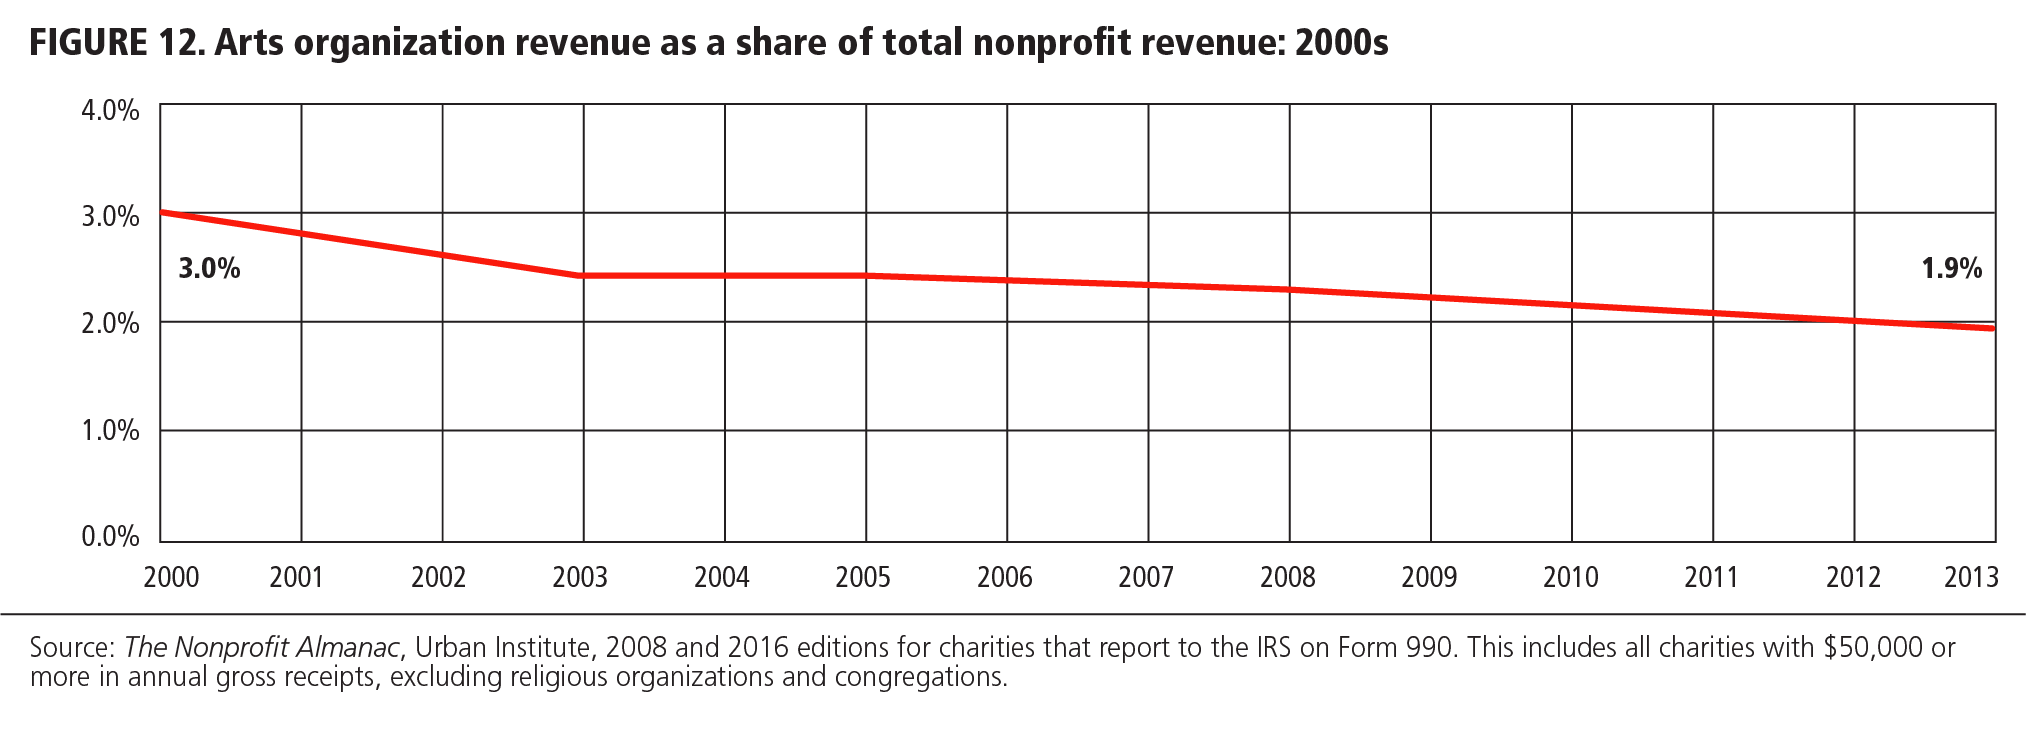 FIGURE 12 Arts organization revenue as a share of total nonprofit revenue: 2000s